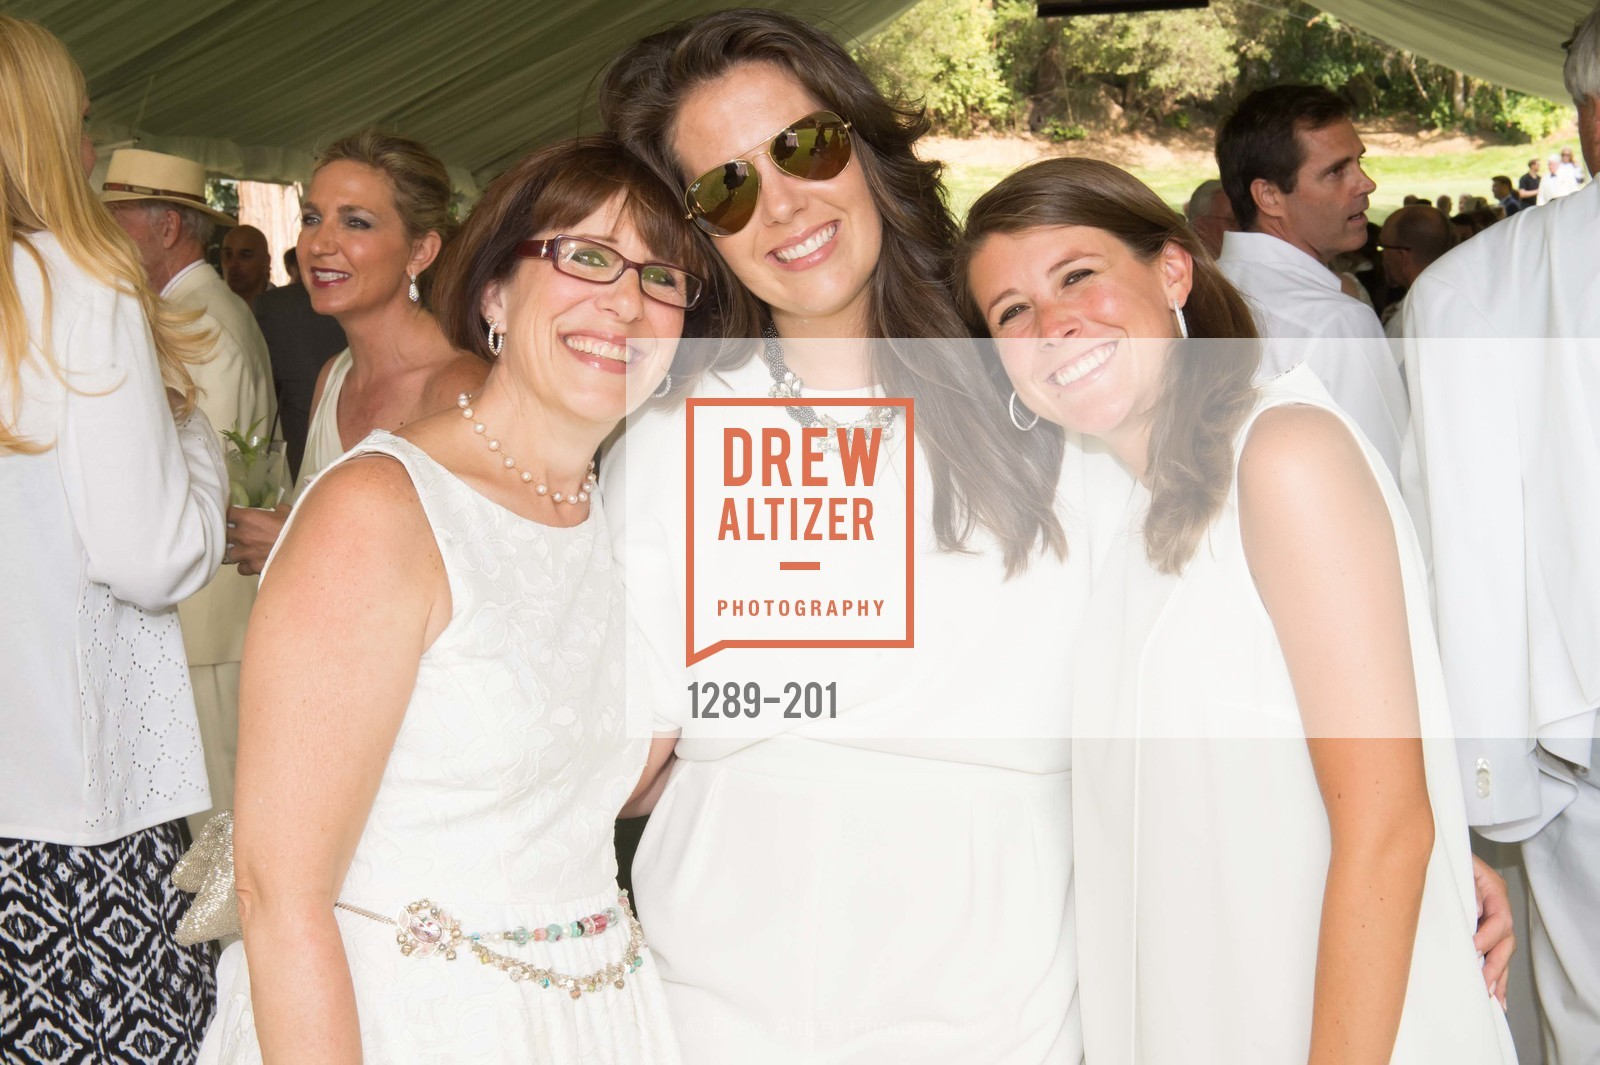 Terri Mino, Meghan Murray, Maggie Koenig, Festival del Sole Annual Gala at Meadowood Napa Valley, Meadowood Napa Valley. 900 Meadowood Ln, July 19th, 2015,Drew Altizer, Drew Altizer Photography, full-service agency, private events, San Francisco photographer, photographer california